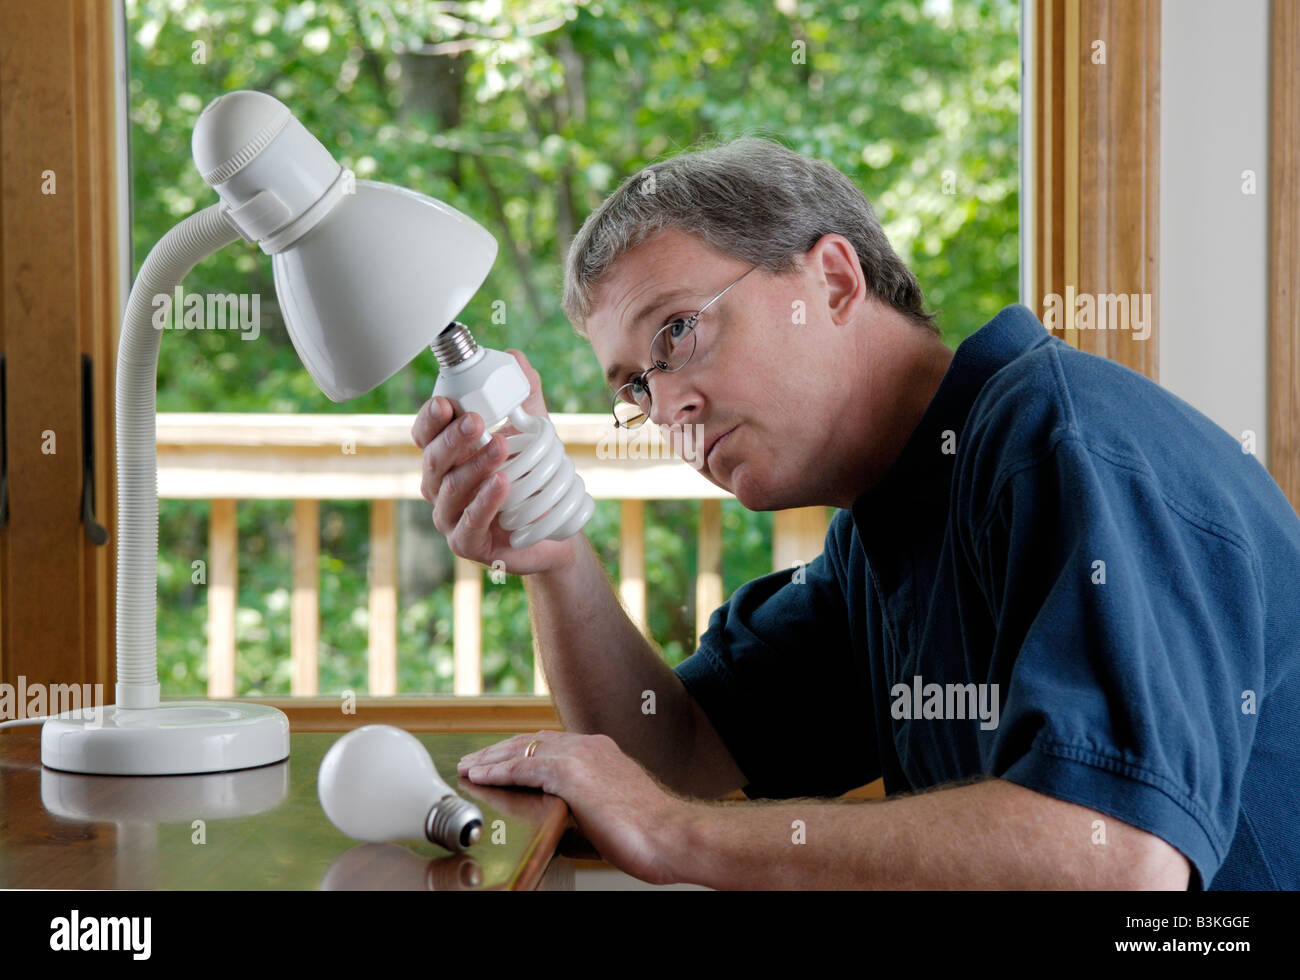 A 45 year old man replaces a household incandescent lightbulb with an energy saving compact fluorescent bulb - Stock Image